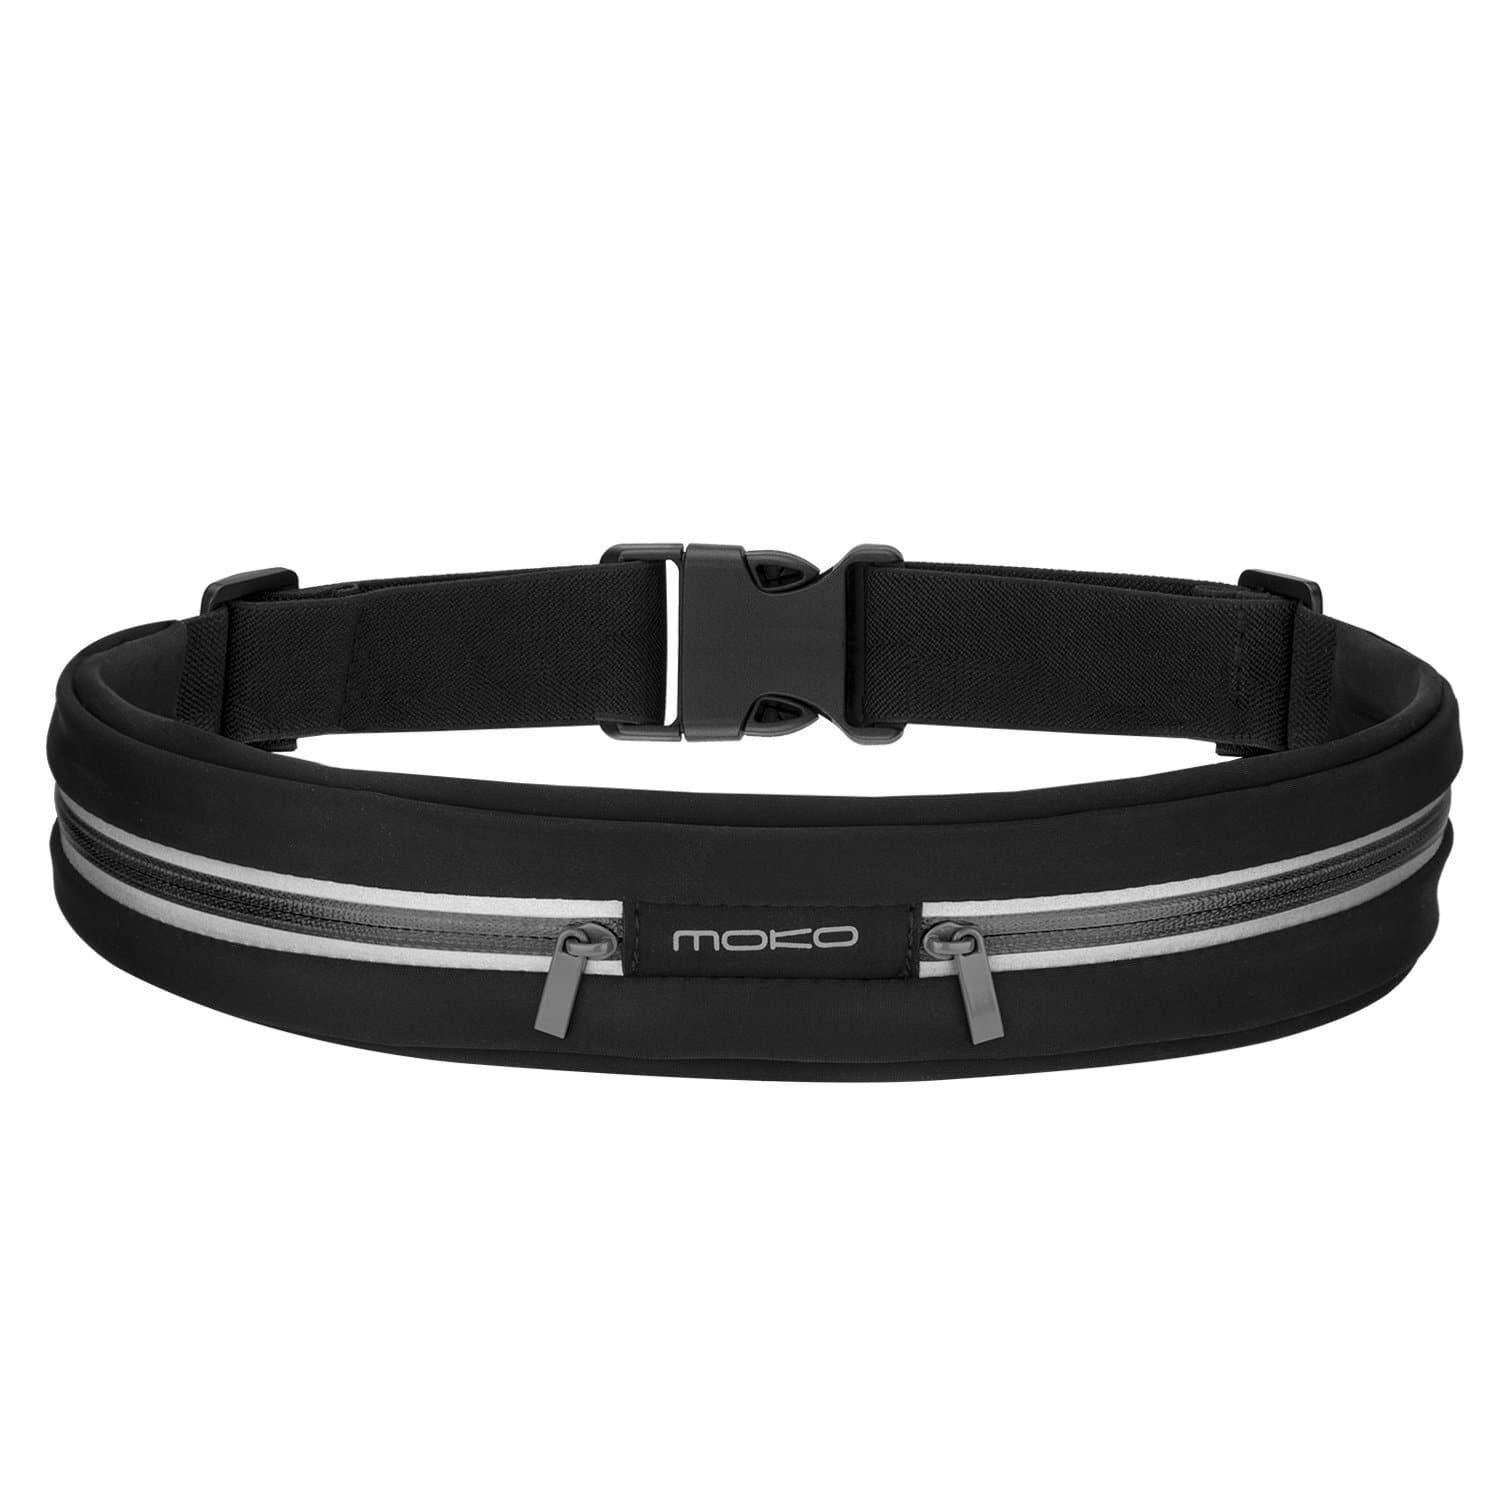 MoKo Sports Running Waist Pack $2.99-$5.99(40%-30% off)